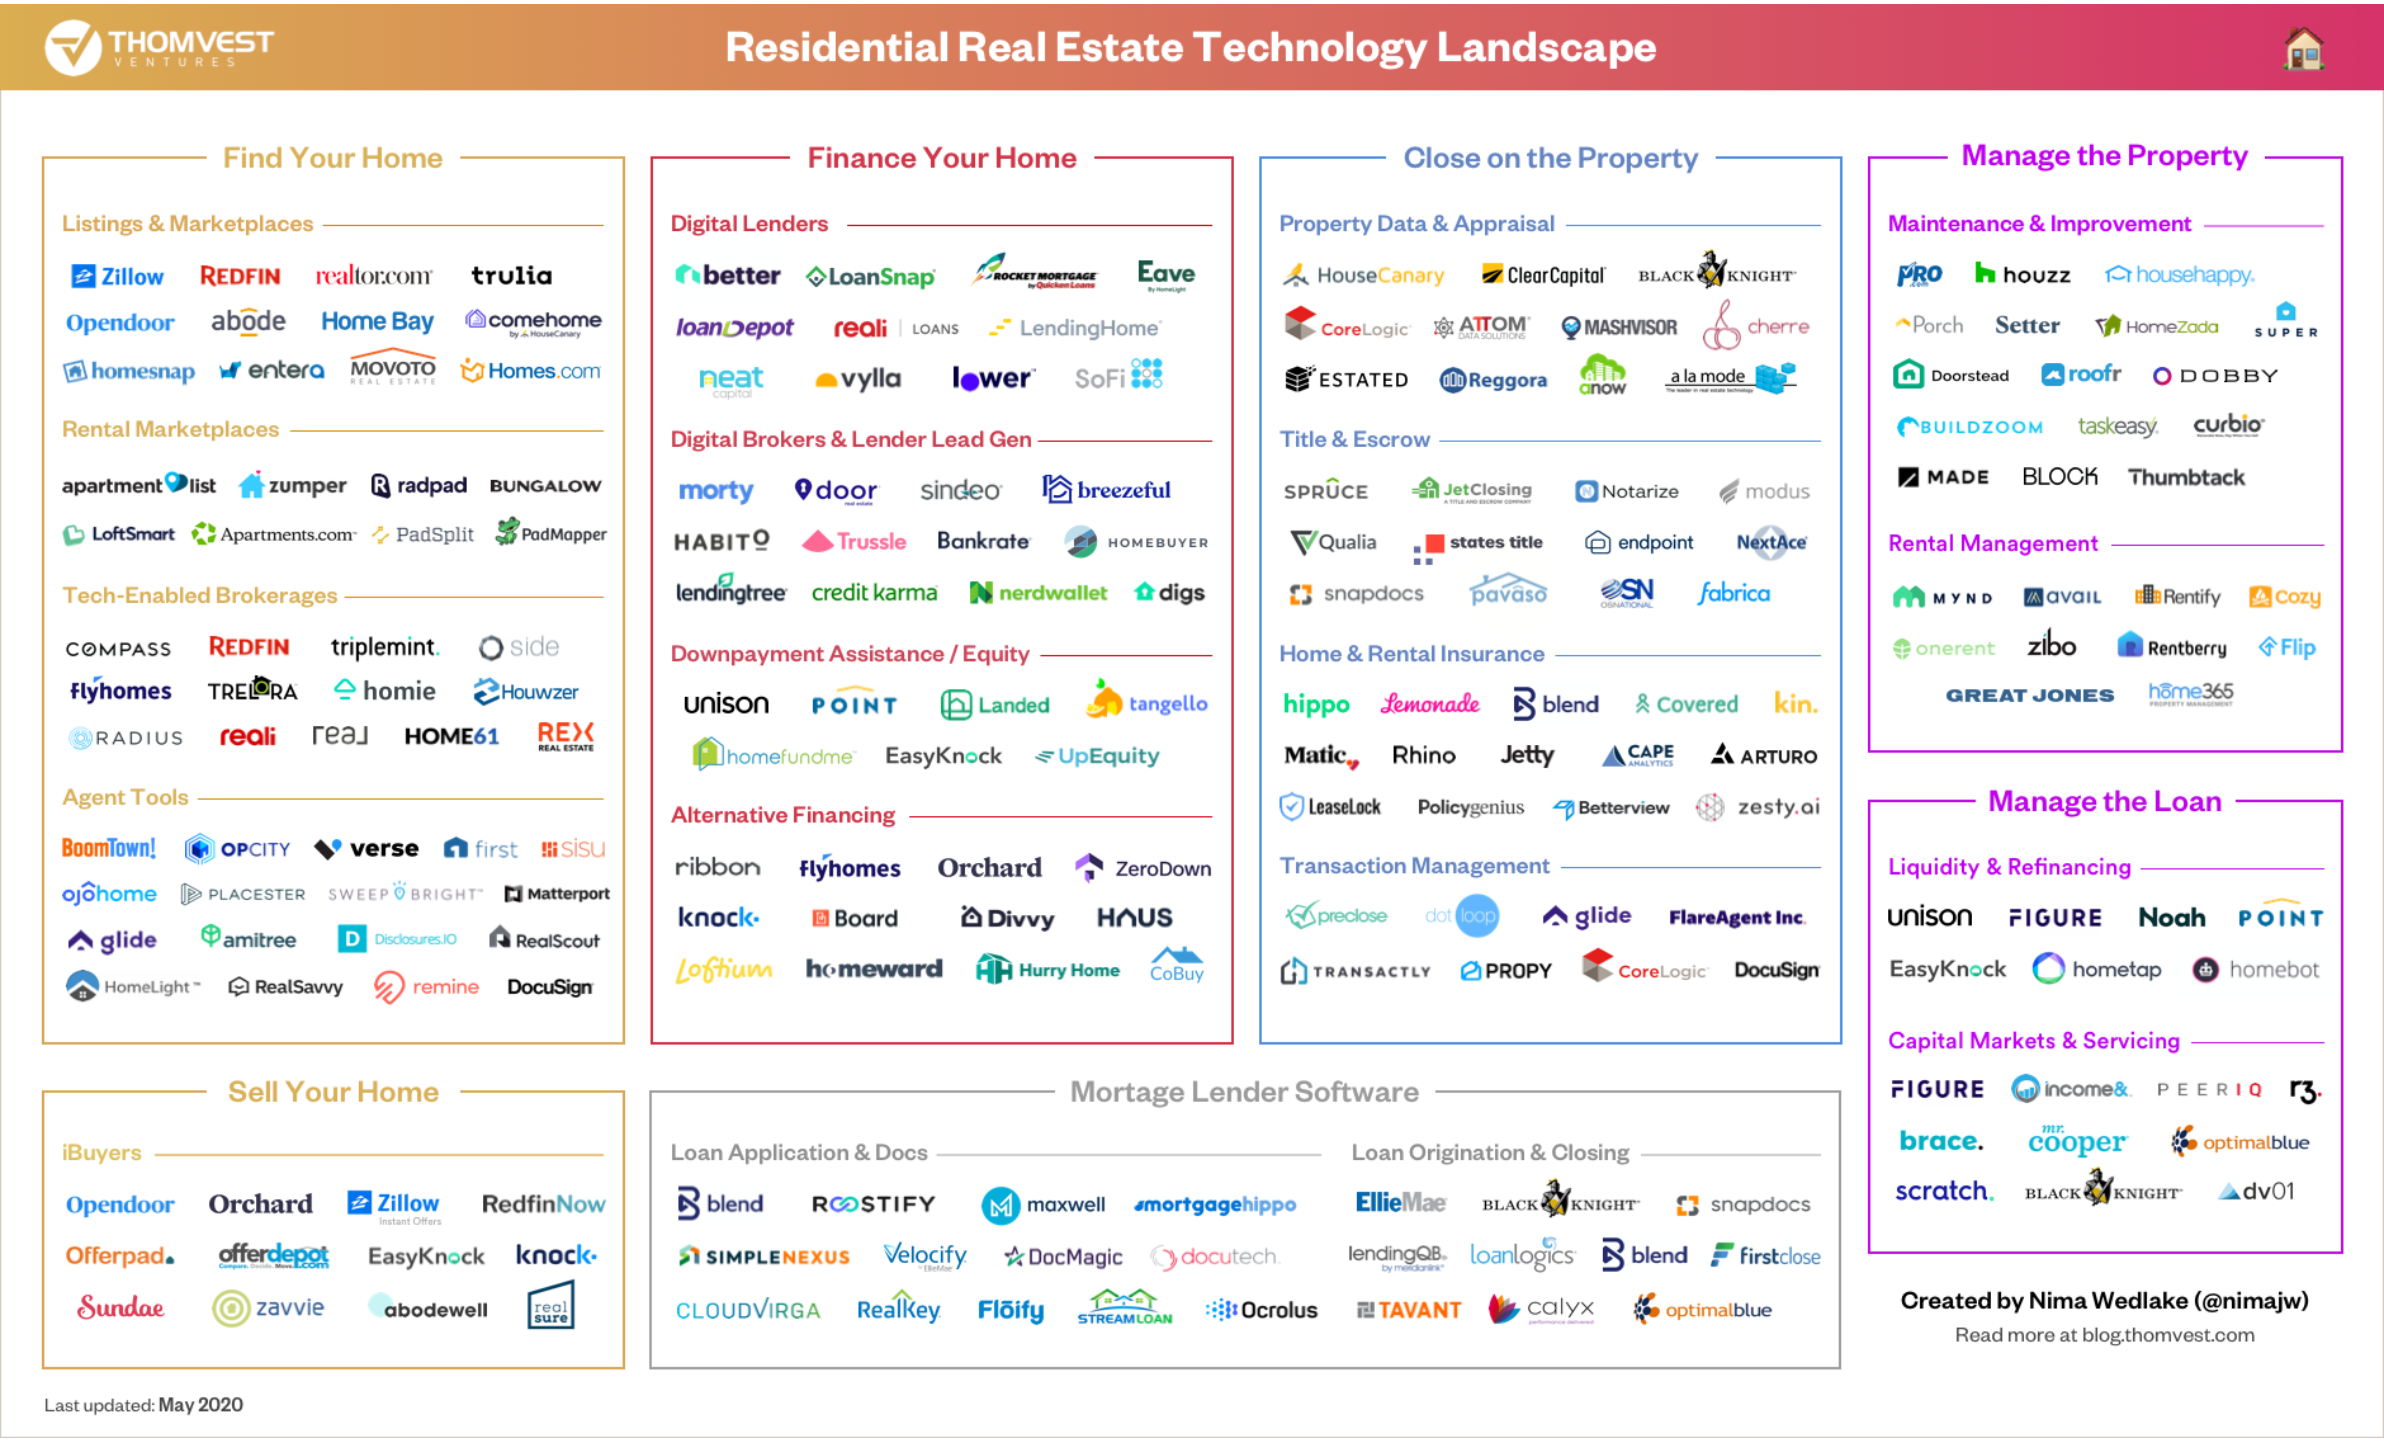 Market Map: 180 Real Estate Technology Companies Transforming Today's Housing Market